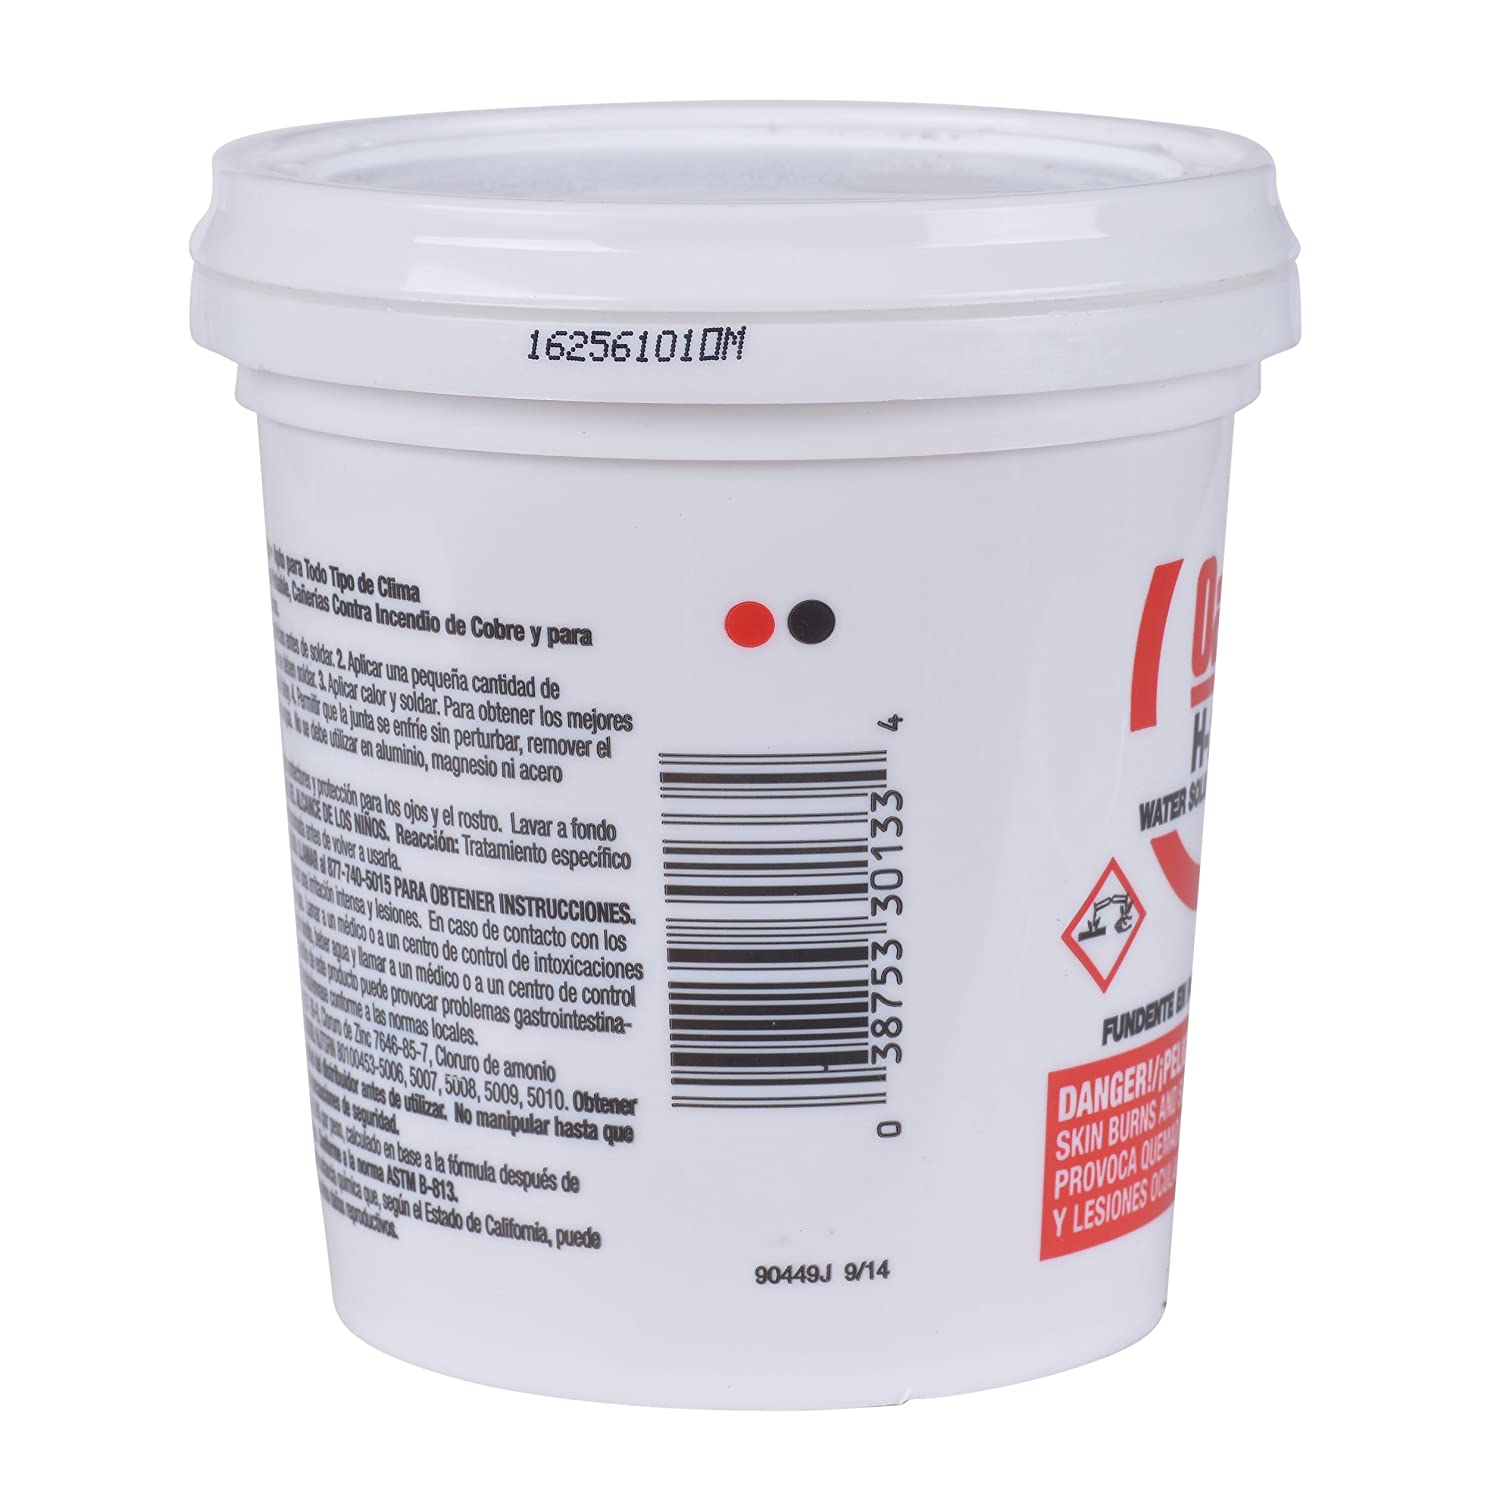 Oatey 30133 H205 Water Soluble Paste Flux, 16-Ounce: Amazon.es: Bricolaje y herramientas